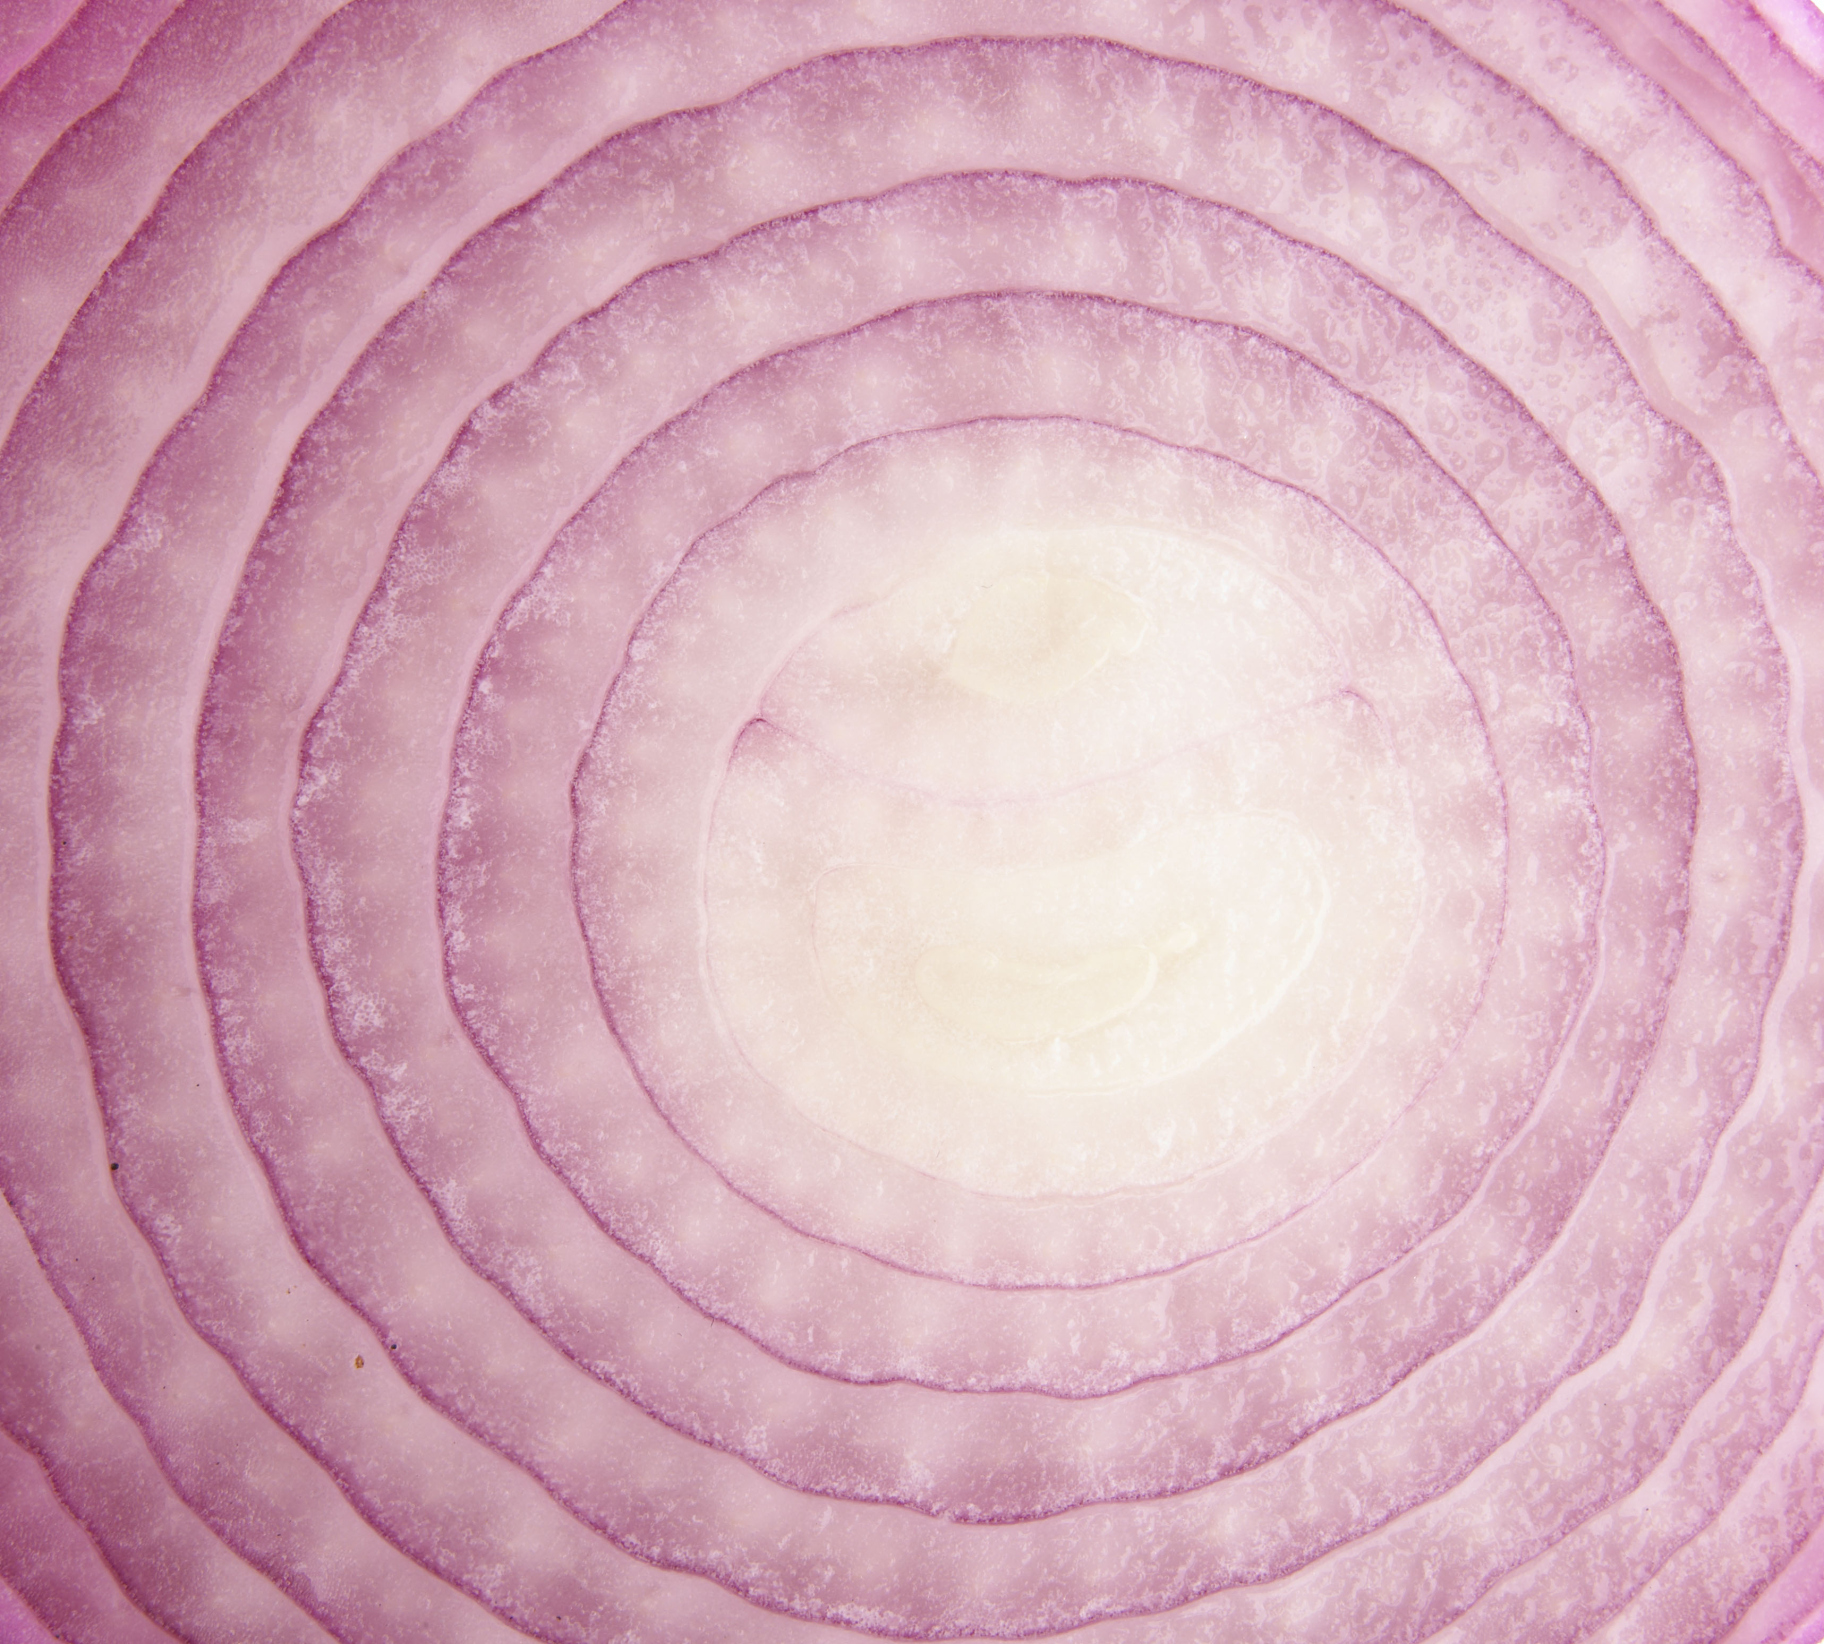 A slice of red onion contains 15 calories.